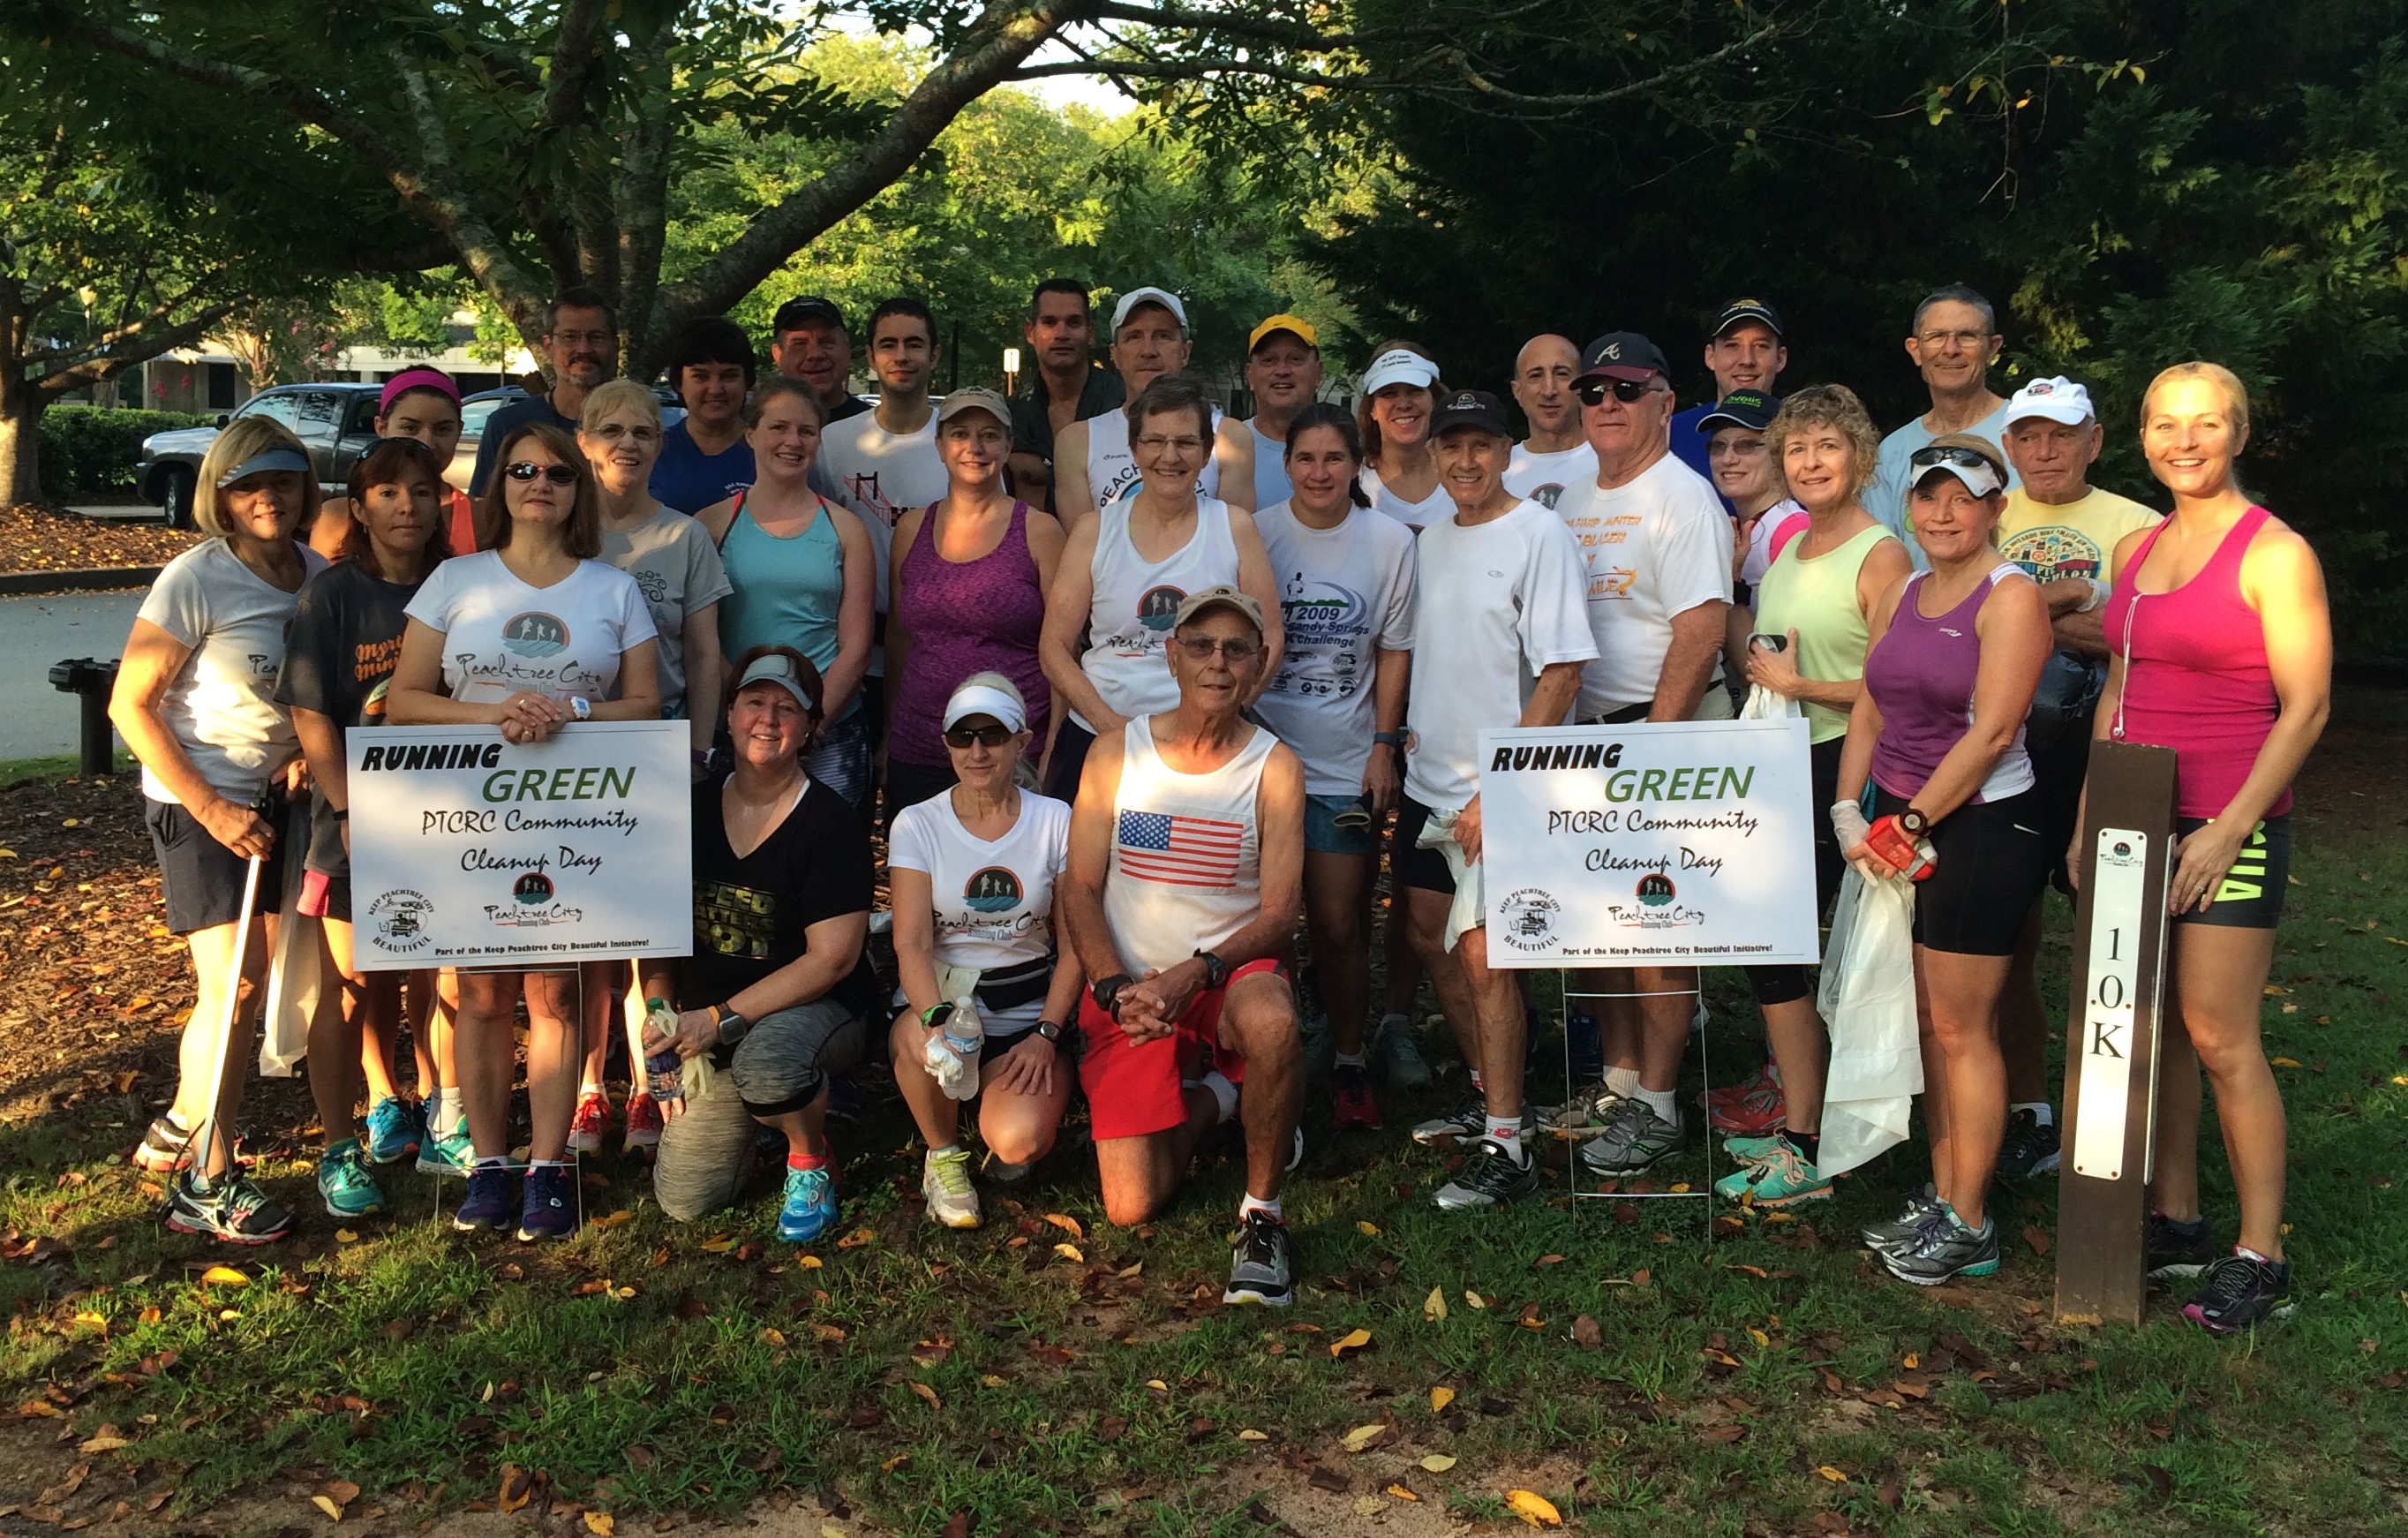 Running Green - PTCRC Community Cleanup Day 2016